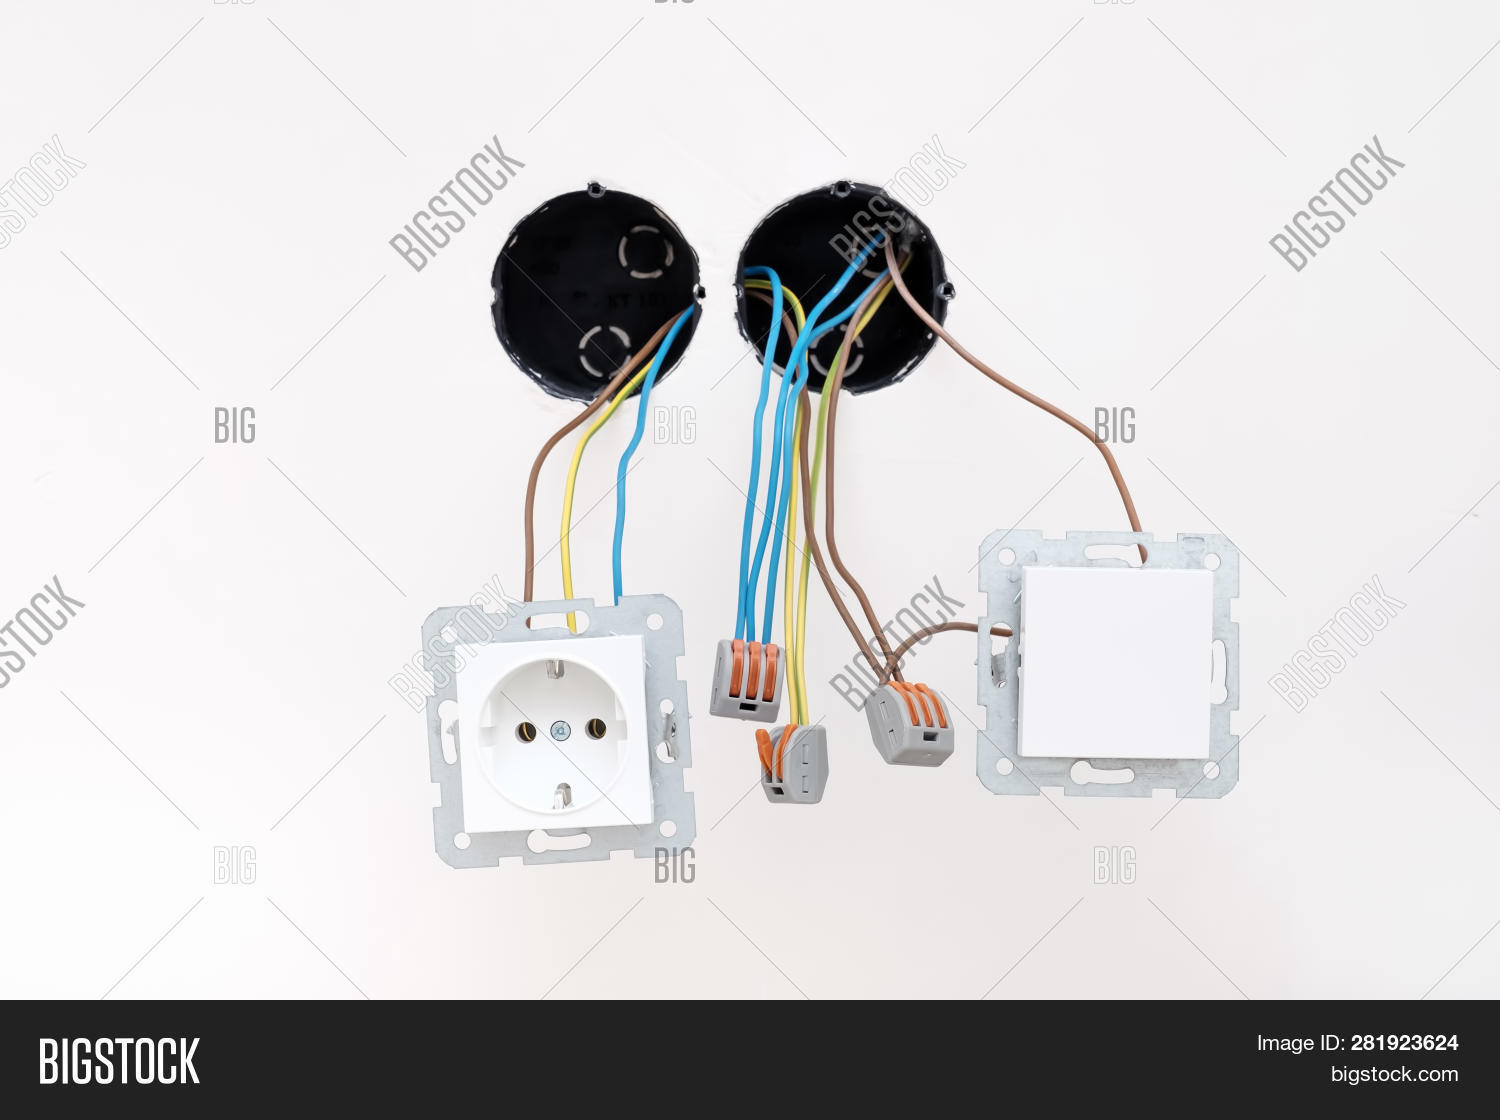 Electrical Socket Image & Photo (Free Trial) | Bigstock on